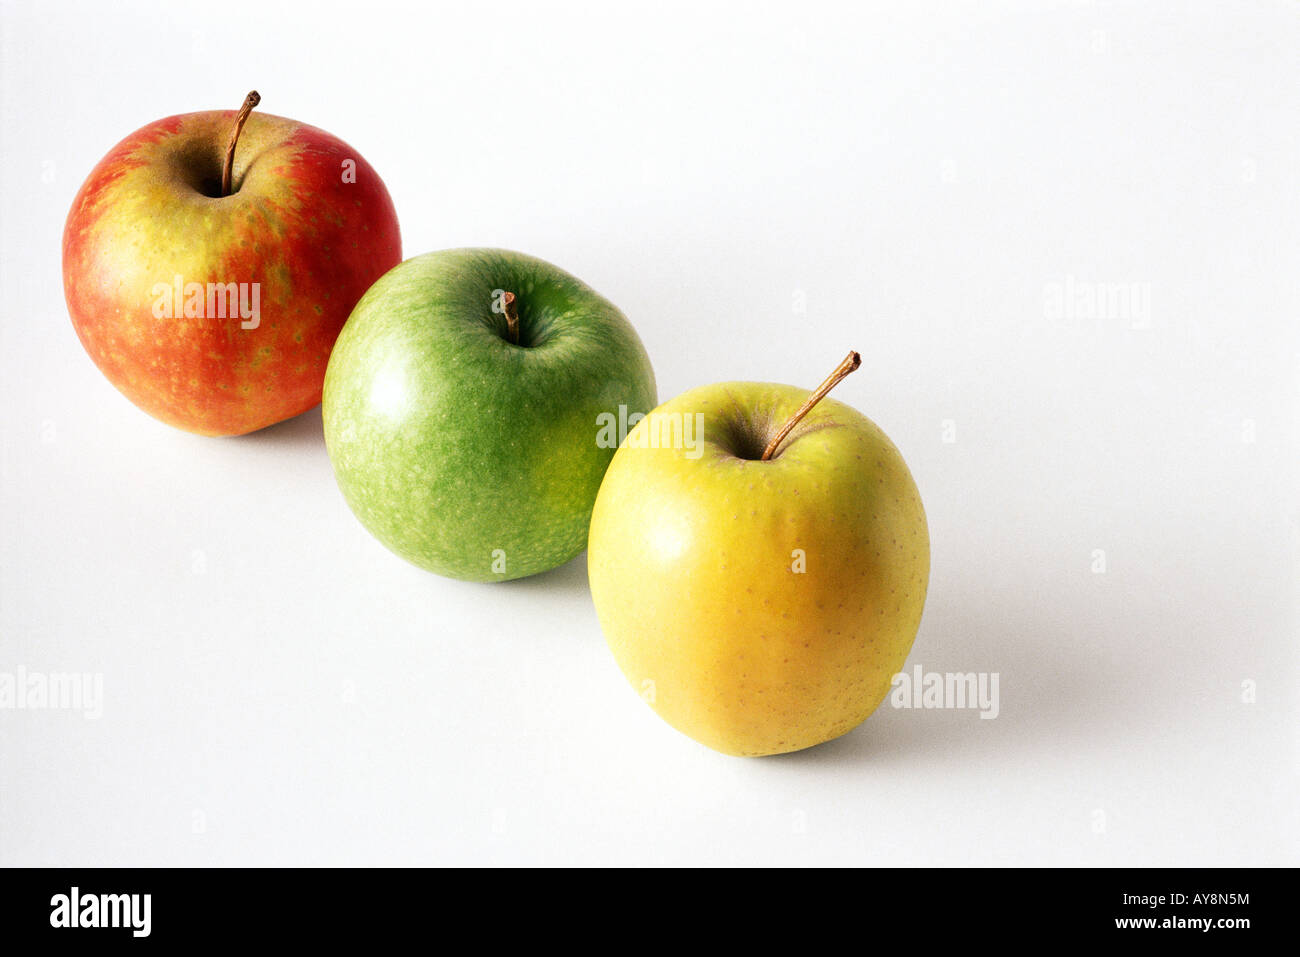 Three assorted apples in a diagonal row, close-up - Stock Image